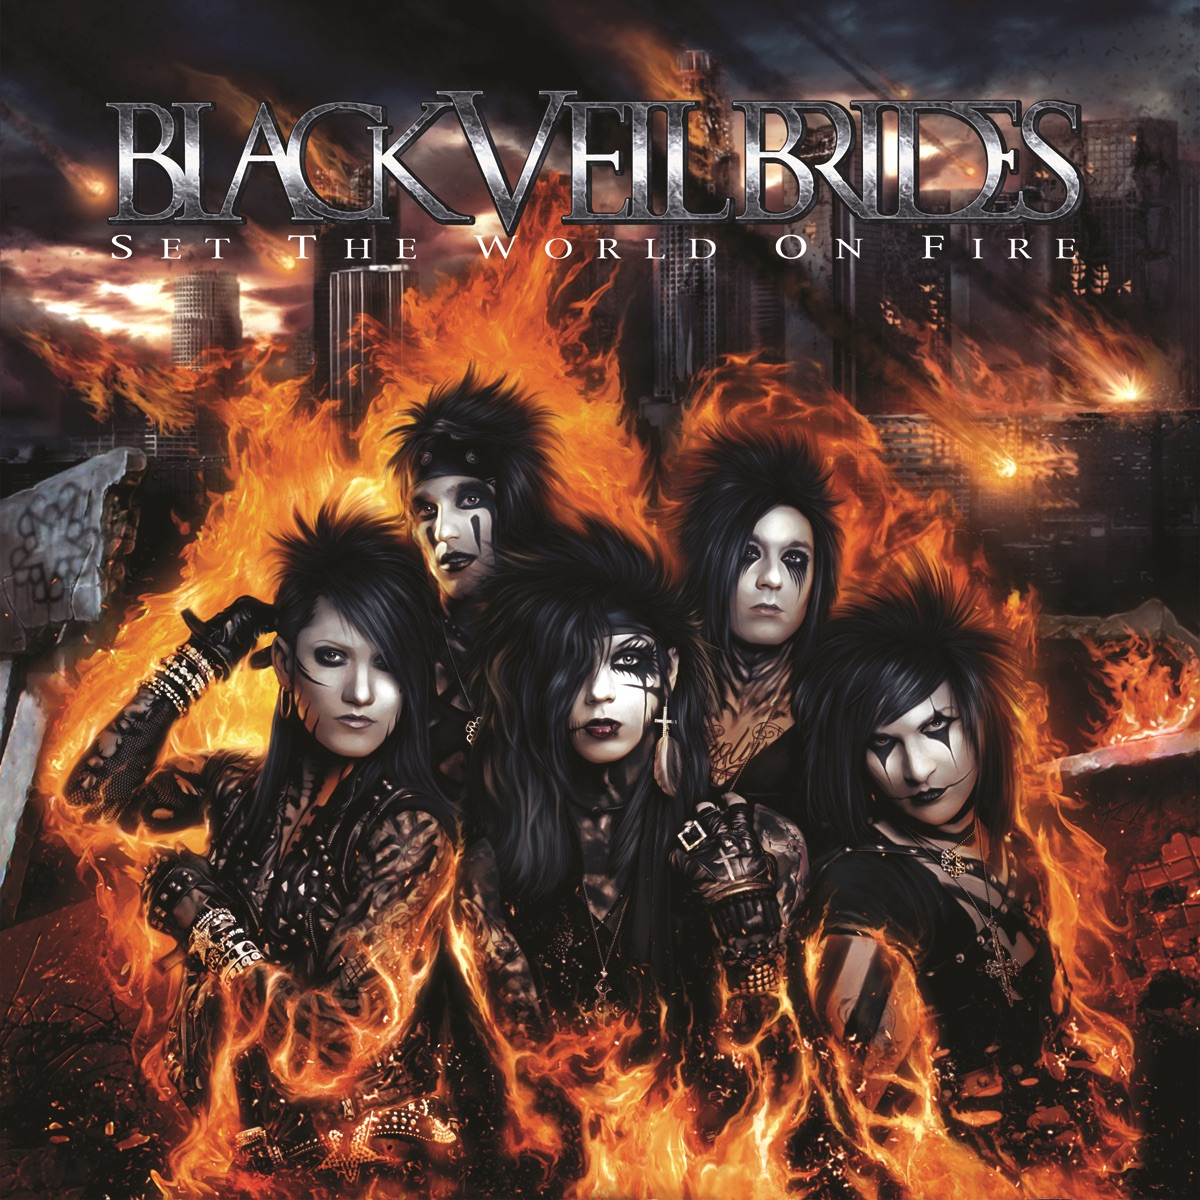 Set the World On Fire Black Veil Brides CD cover